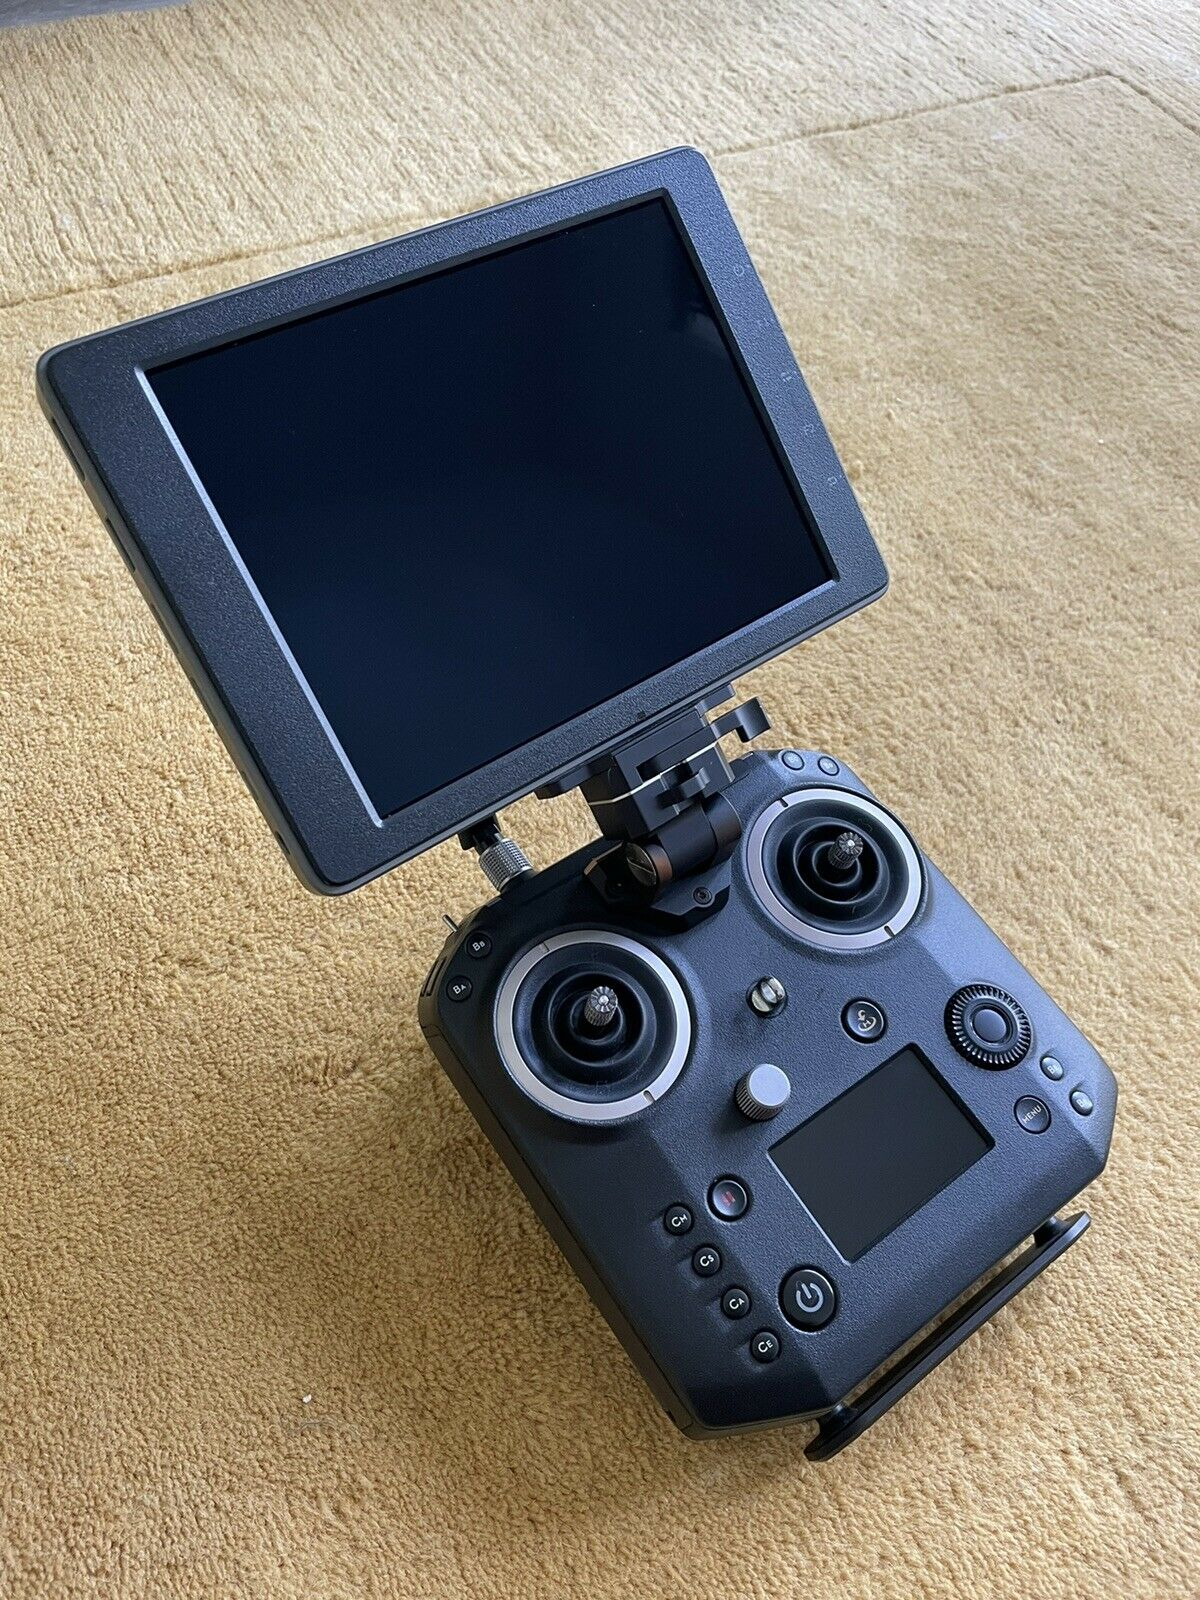 DJI Cendence S with DJI CrystalSky 7.85 Inch Monitor and Batteries